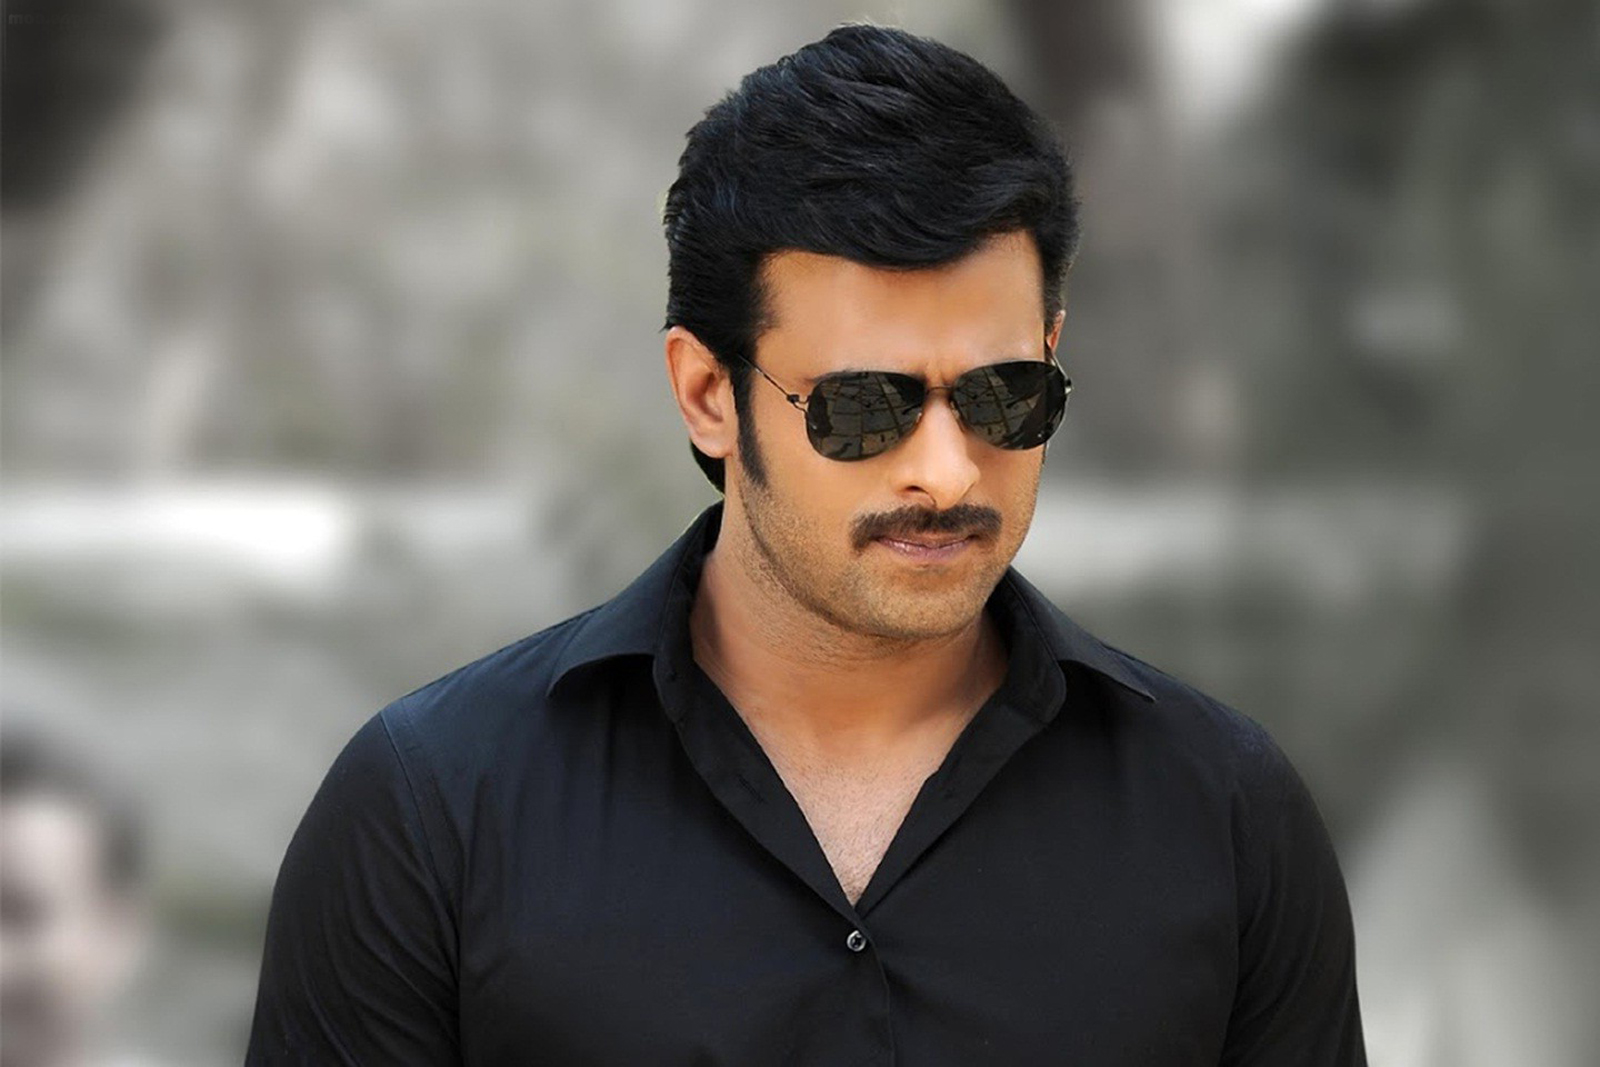 Handsome Prabhas In Black Shirt And Goggle Hd Wallpaper: Beautiful Prabhas Full HD Photo And Wallpapers Gallery 2019